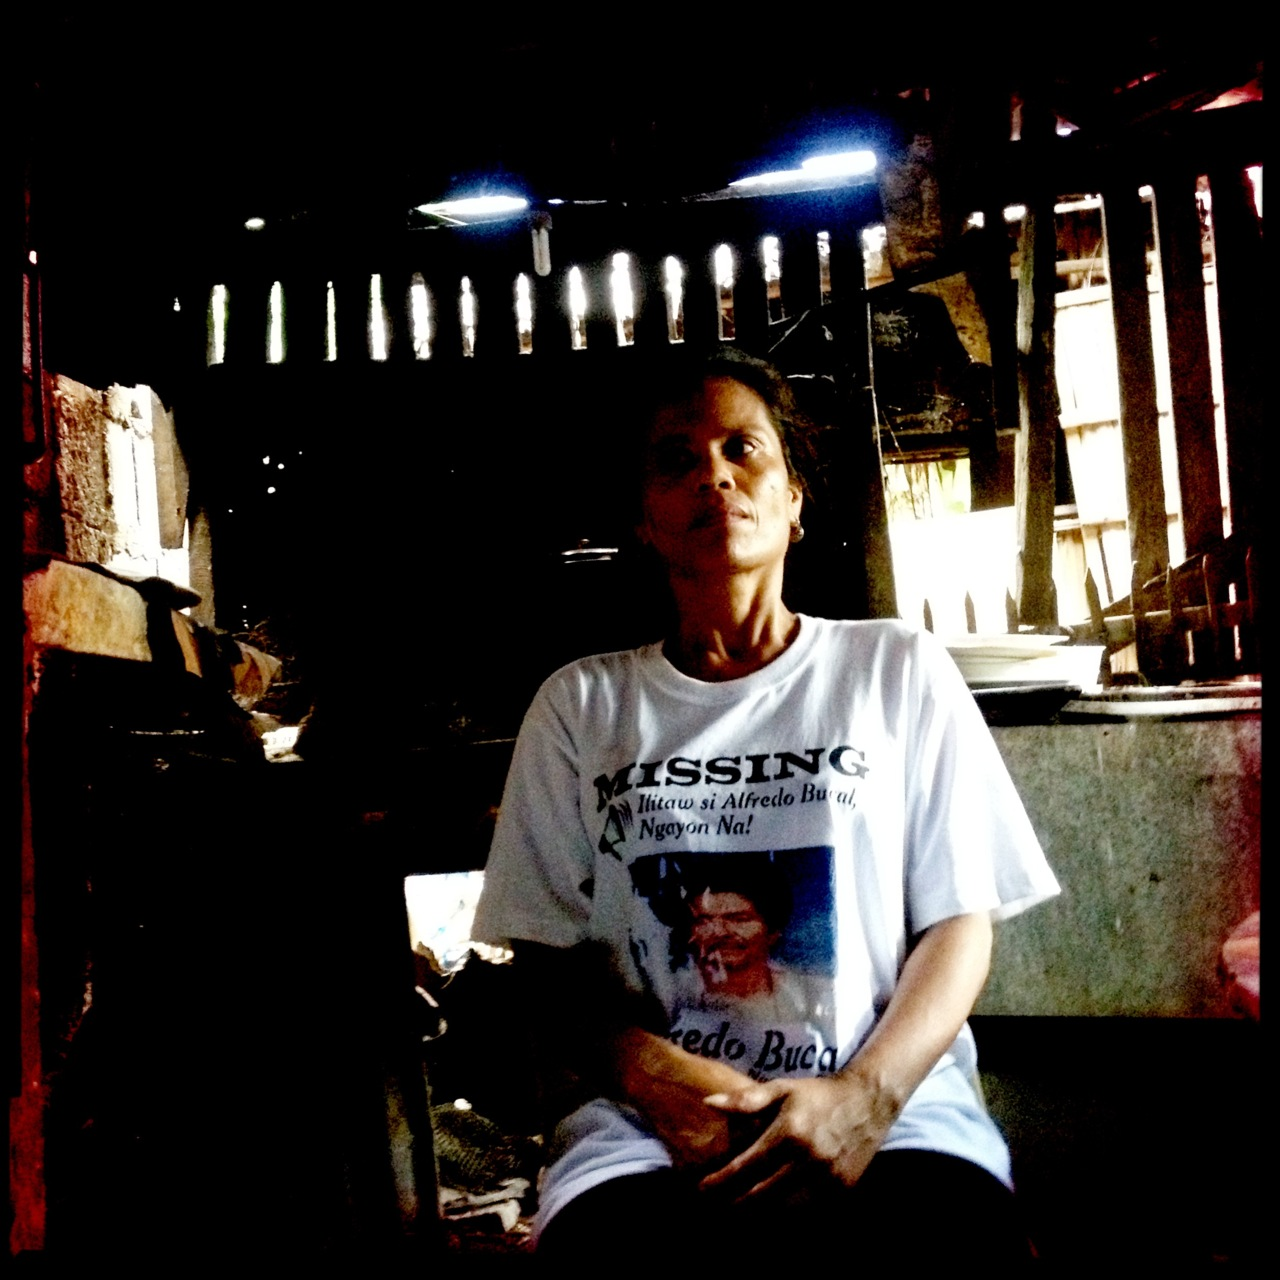 Merlita Bukal, daughter of Alfredo Bukal who was abducted on November 10, 2010 in Tuy, Batangas by unidentified men in uniform.